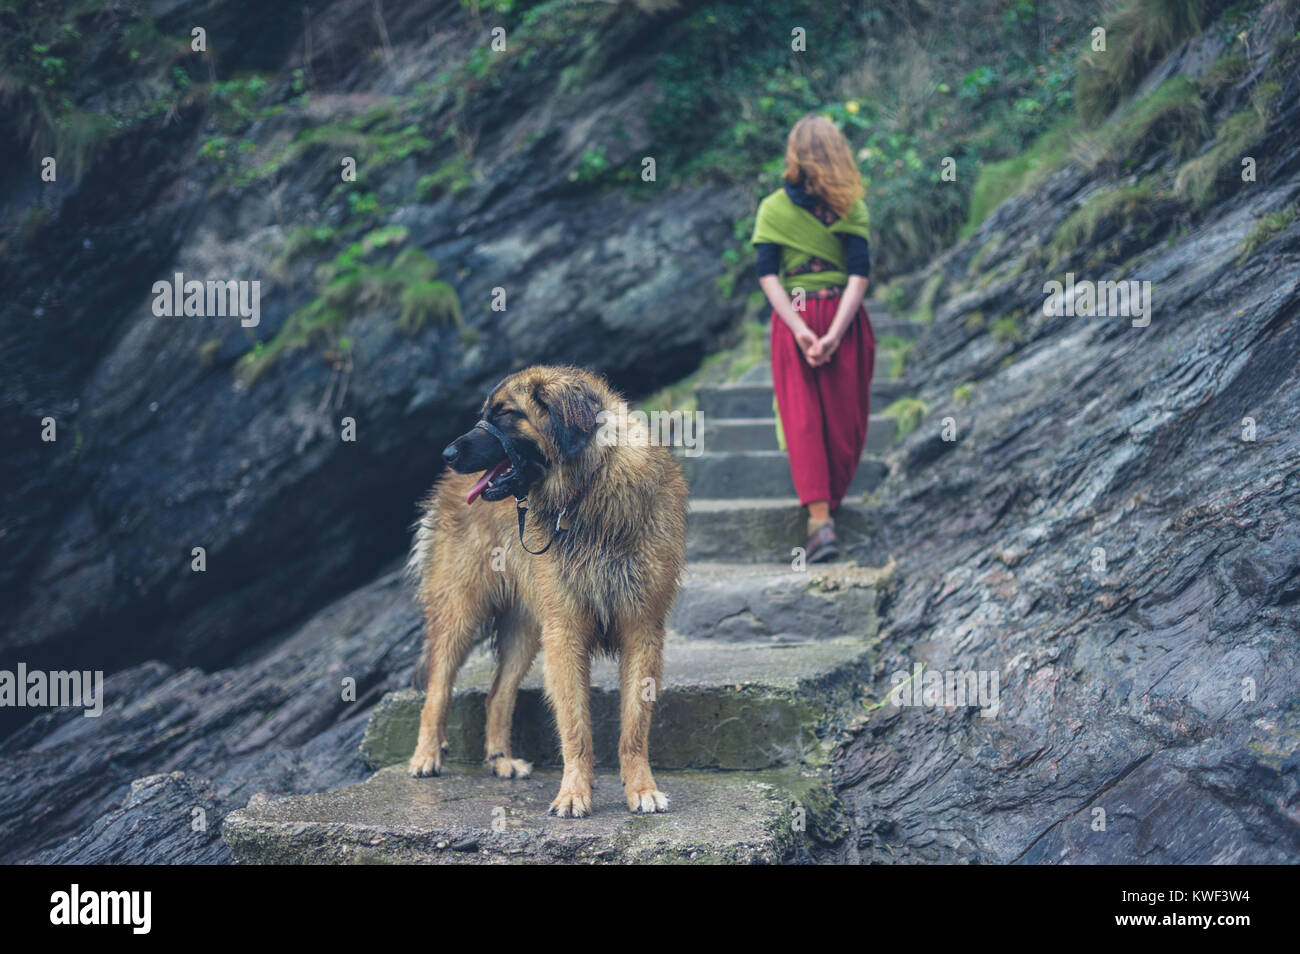 A young woman is walking up some steps outside in nature with her dog - Stock Image